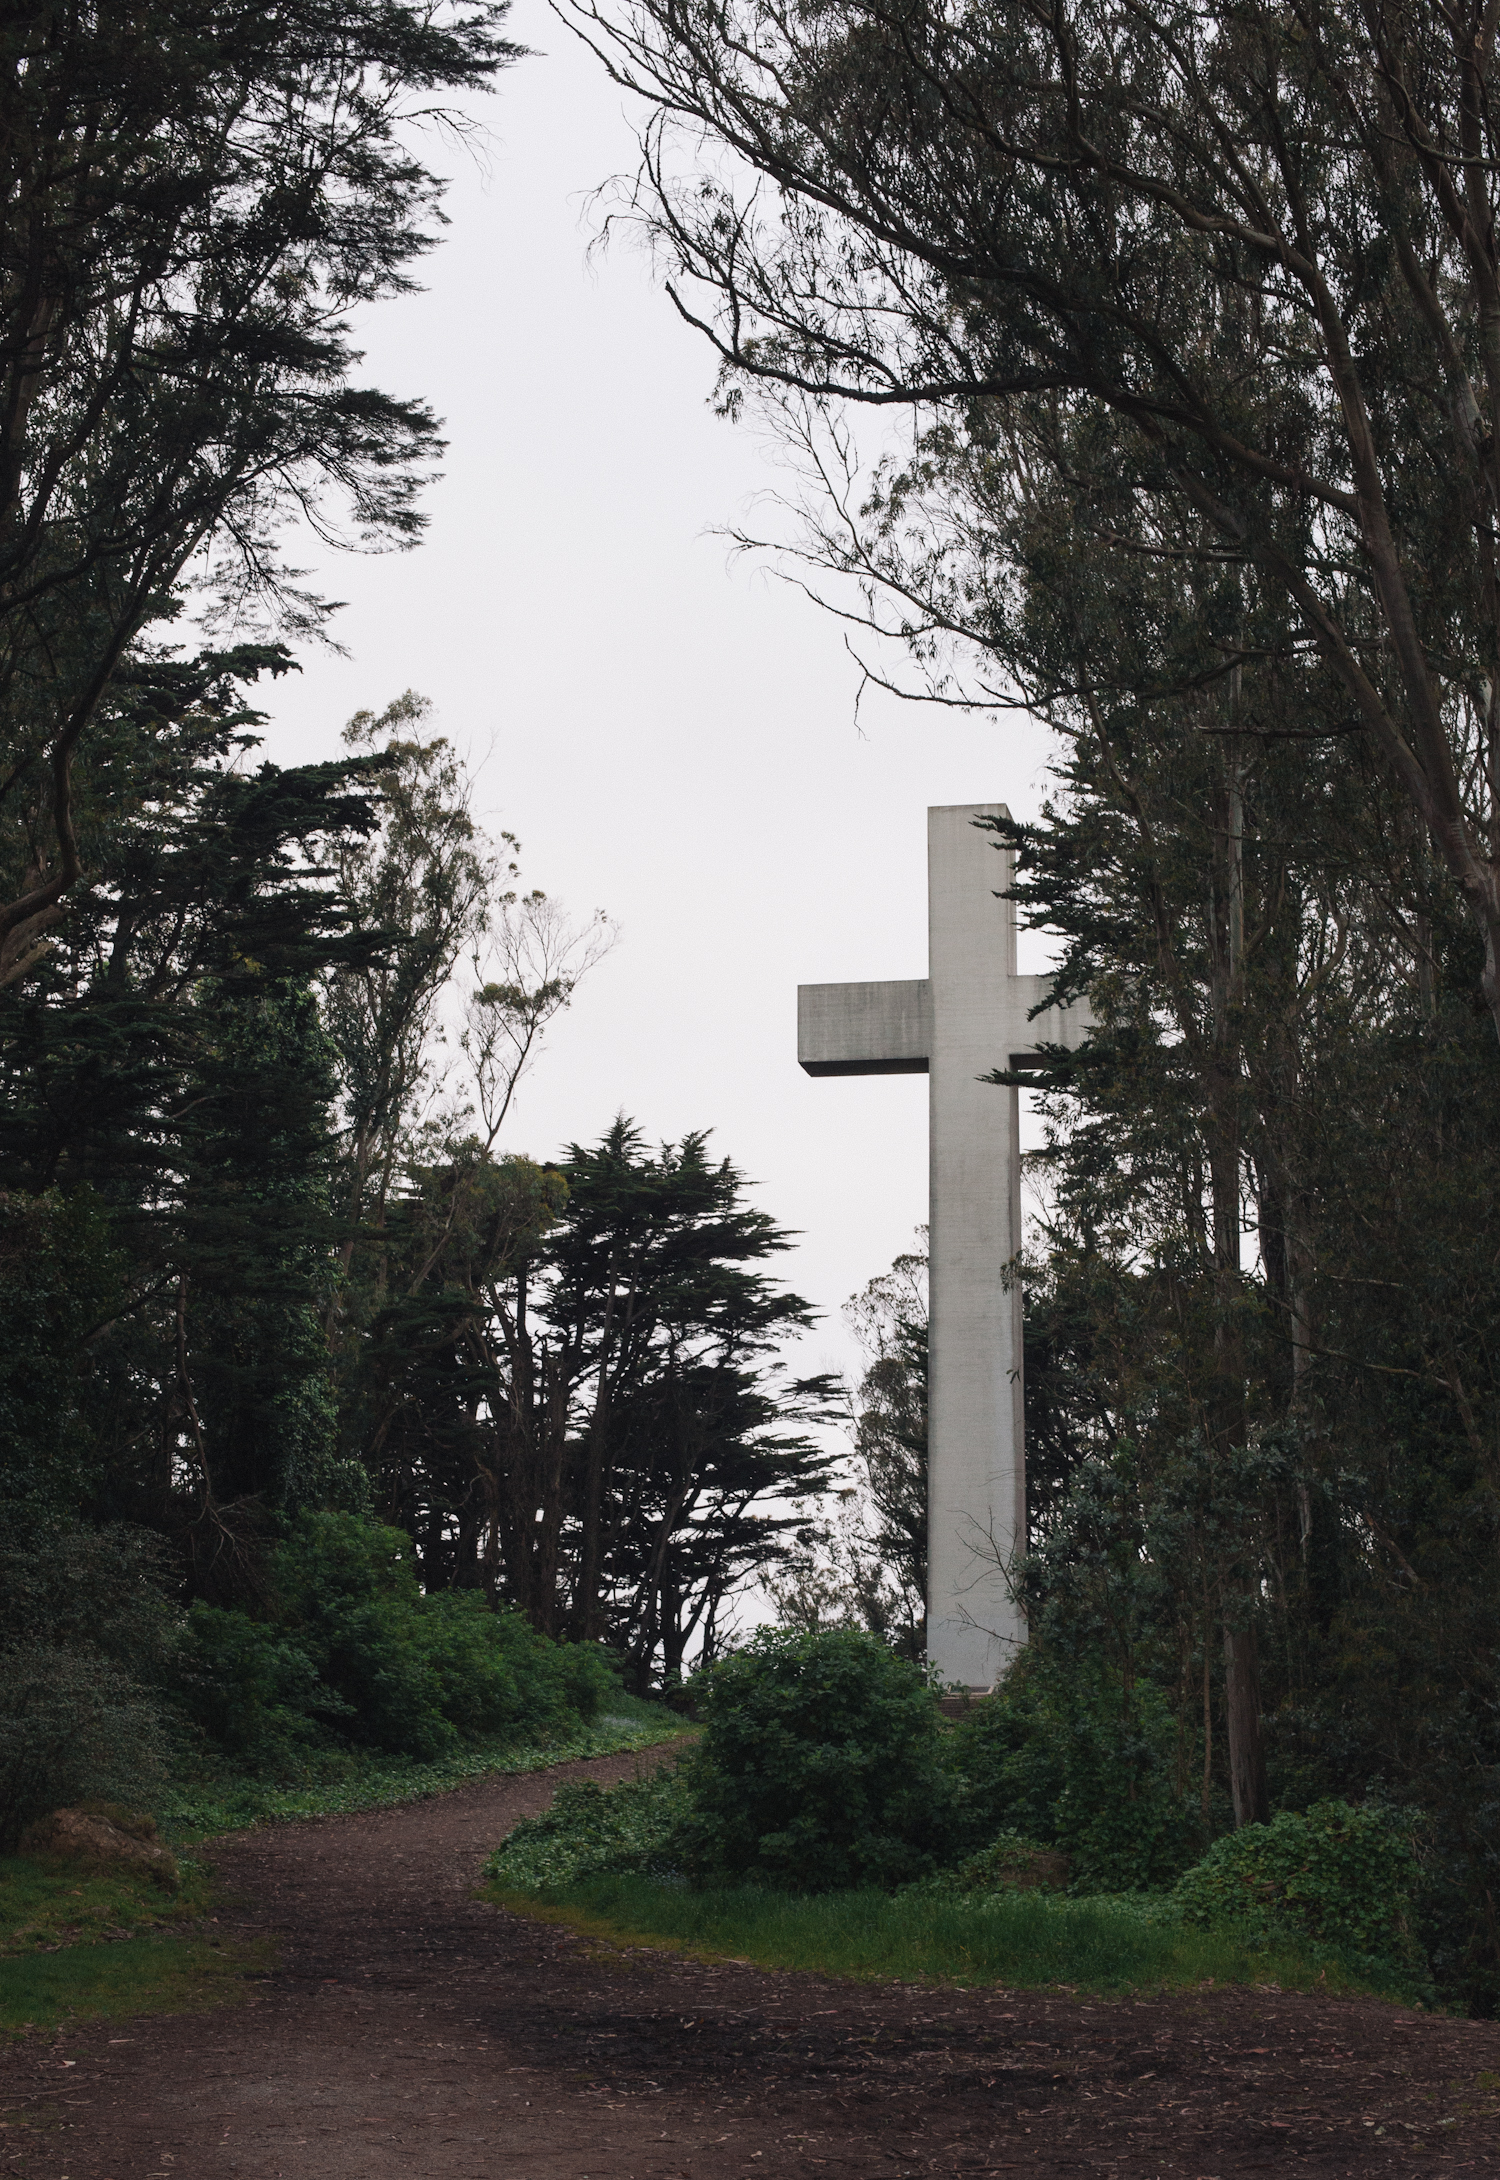 The cross at Mt. Davidson, made famous by Dirty Harry.